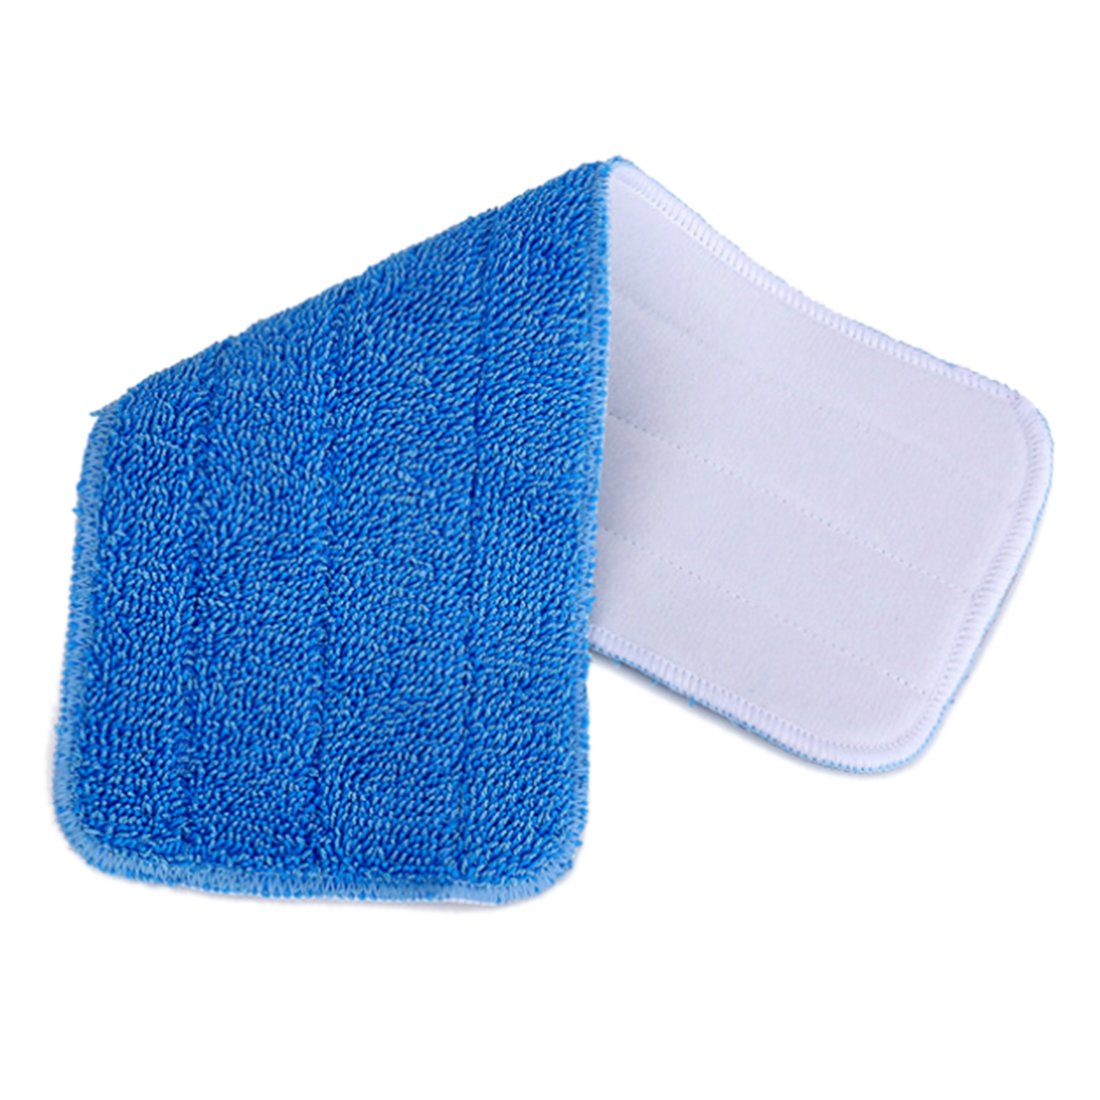 Microfiber Mop Pads, Yamix Set of 10 Hardwood and Floor Microfiber Spray Mop Pads Cleaning Pad Mop Refill Replacement Heads for Wet/Dry Mops,Spray and Spin Magic Mop - Blue by Yamix (Image #3)